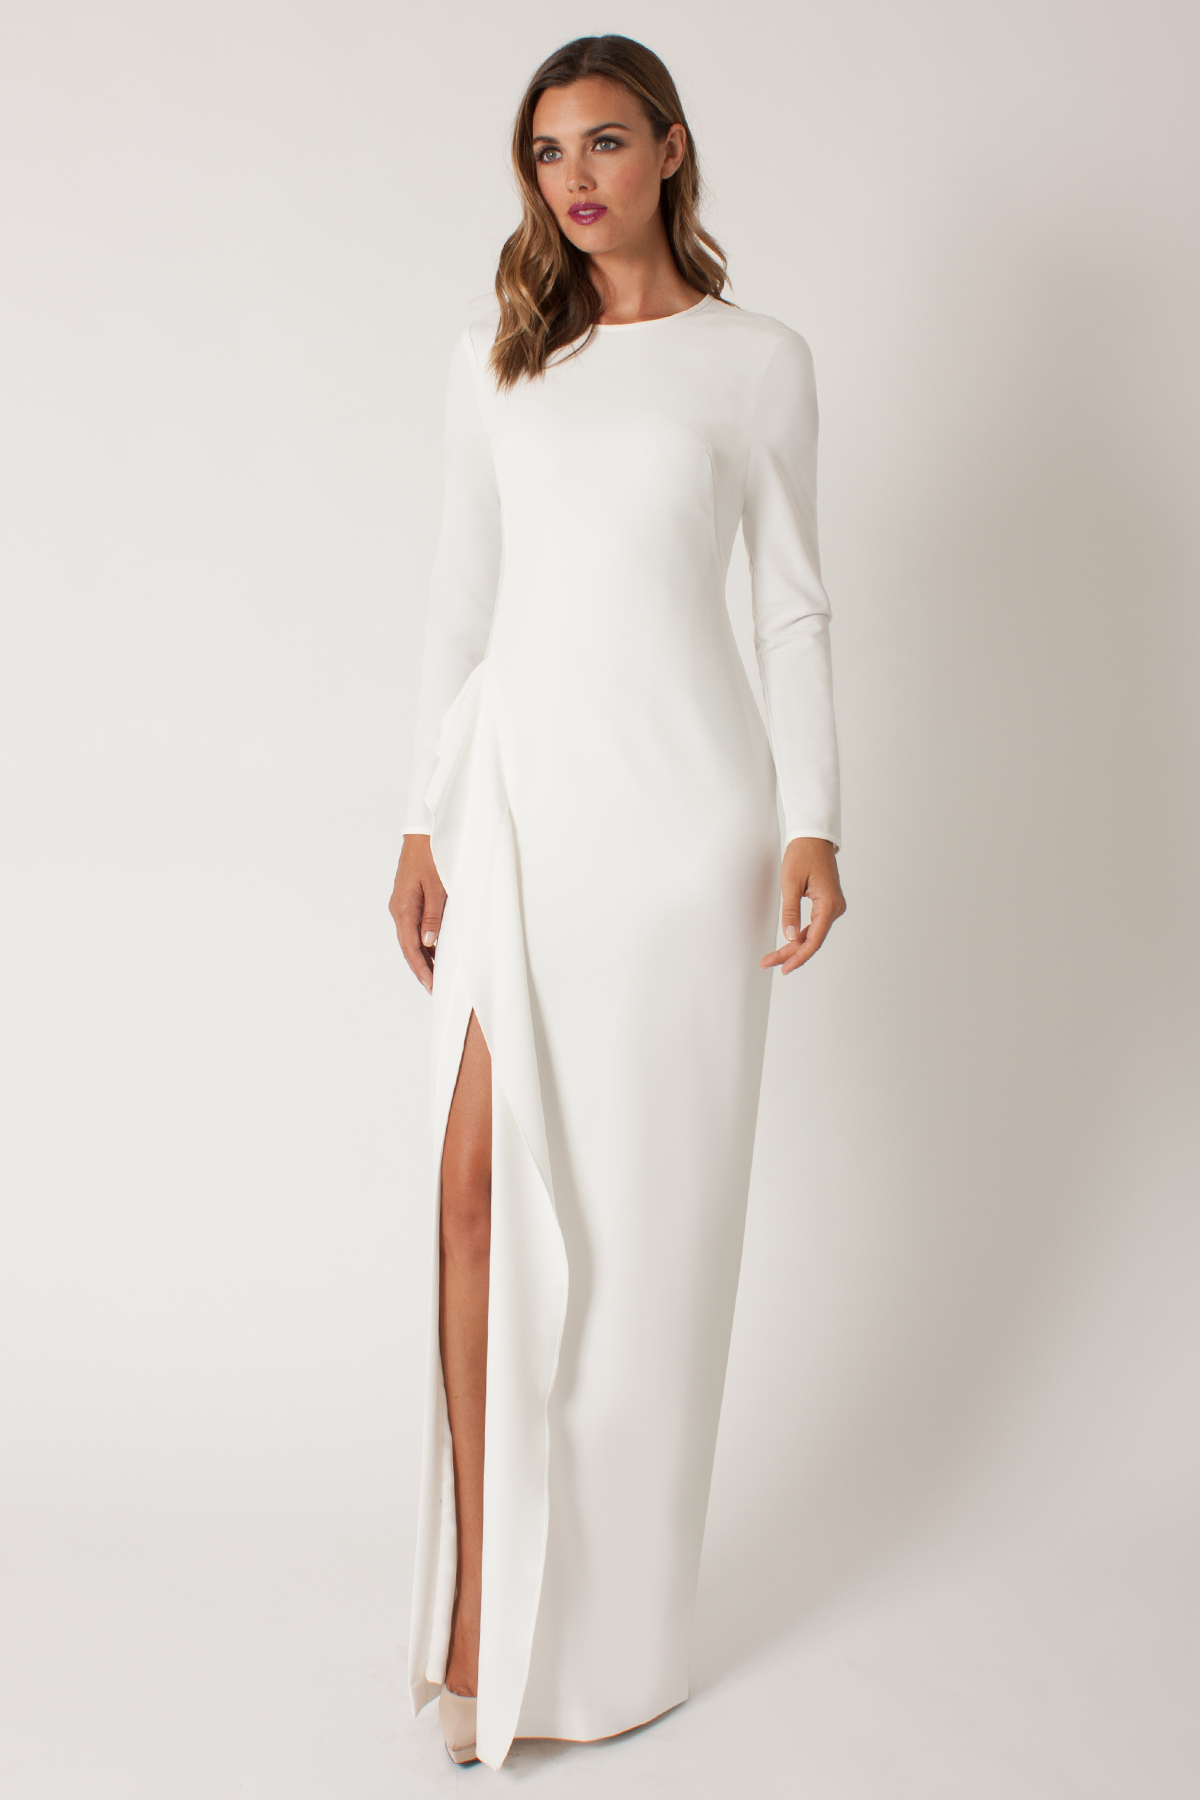 Lyst - Black Halo Albright Gown in White